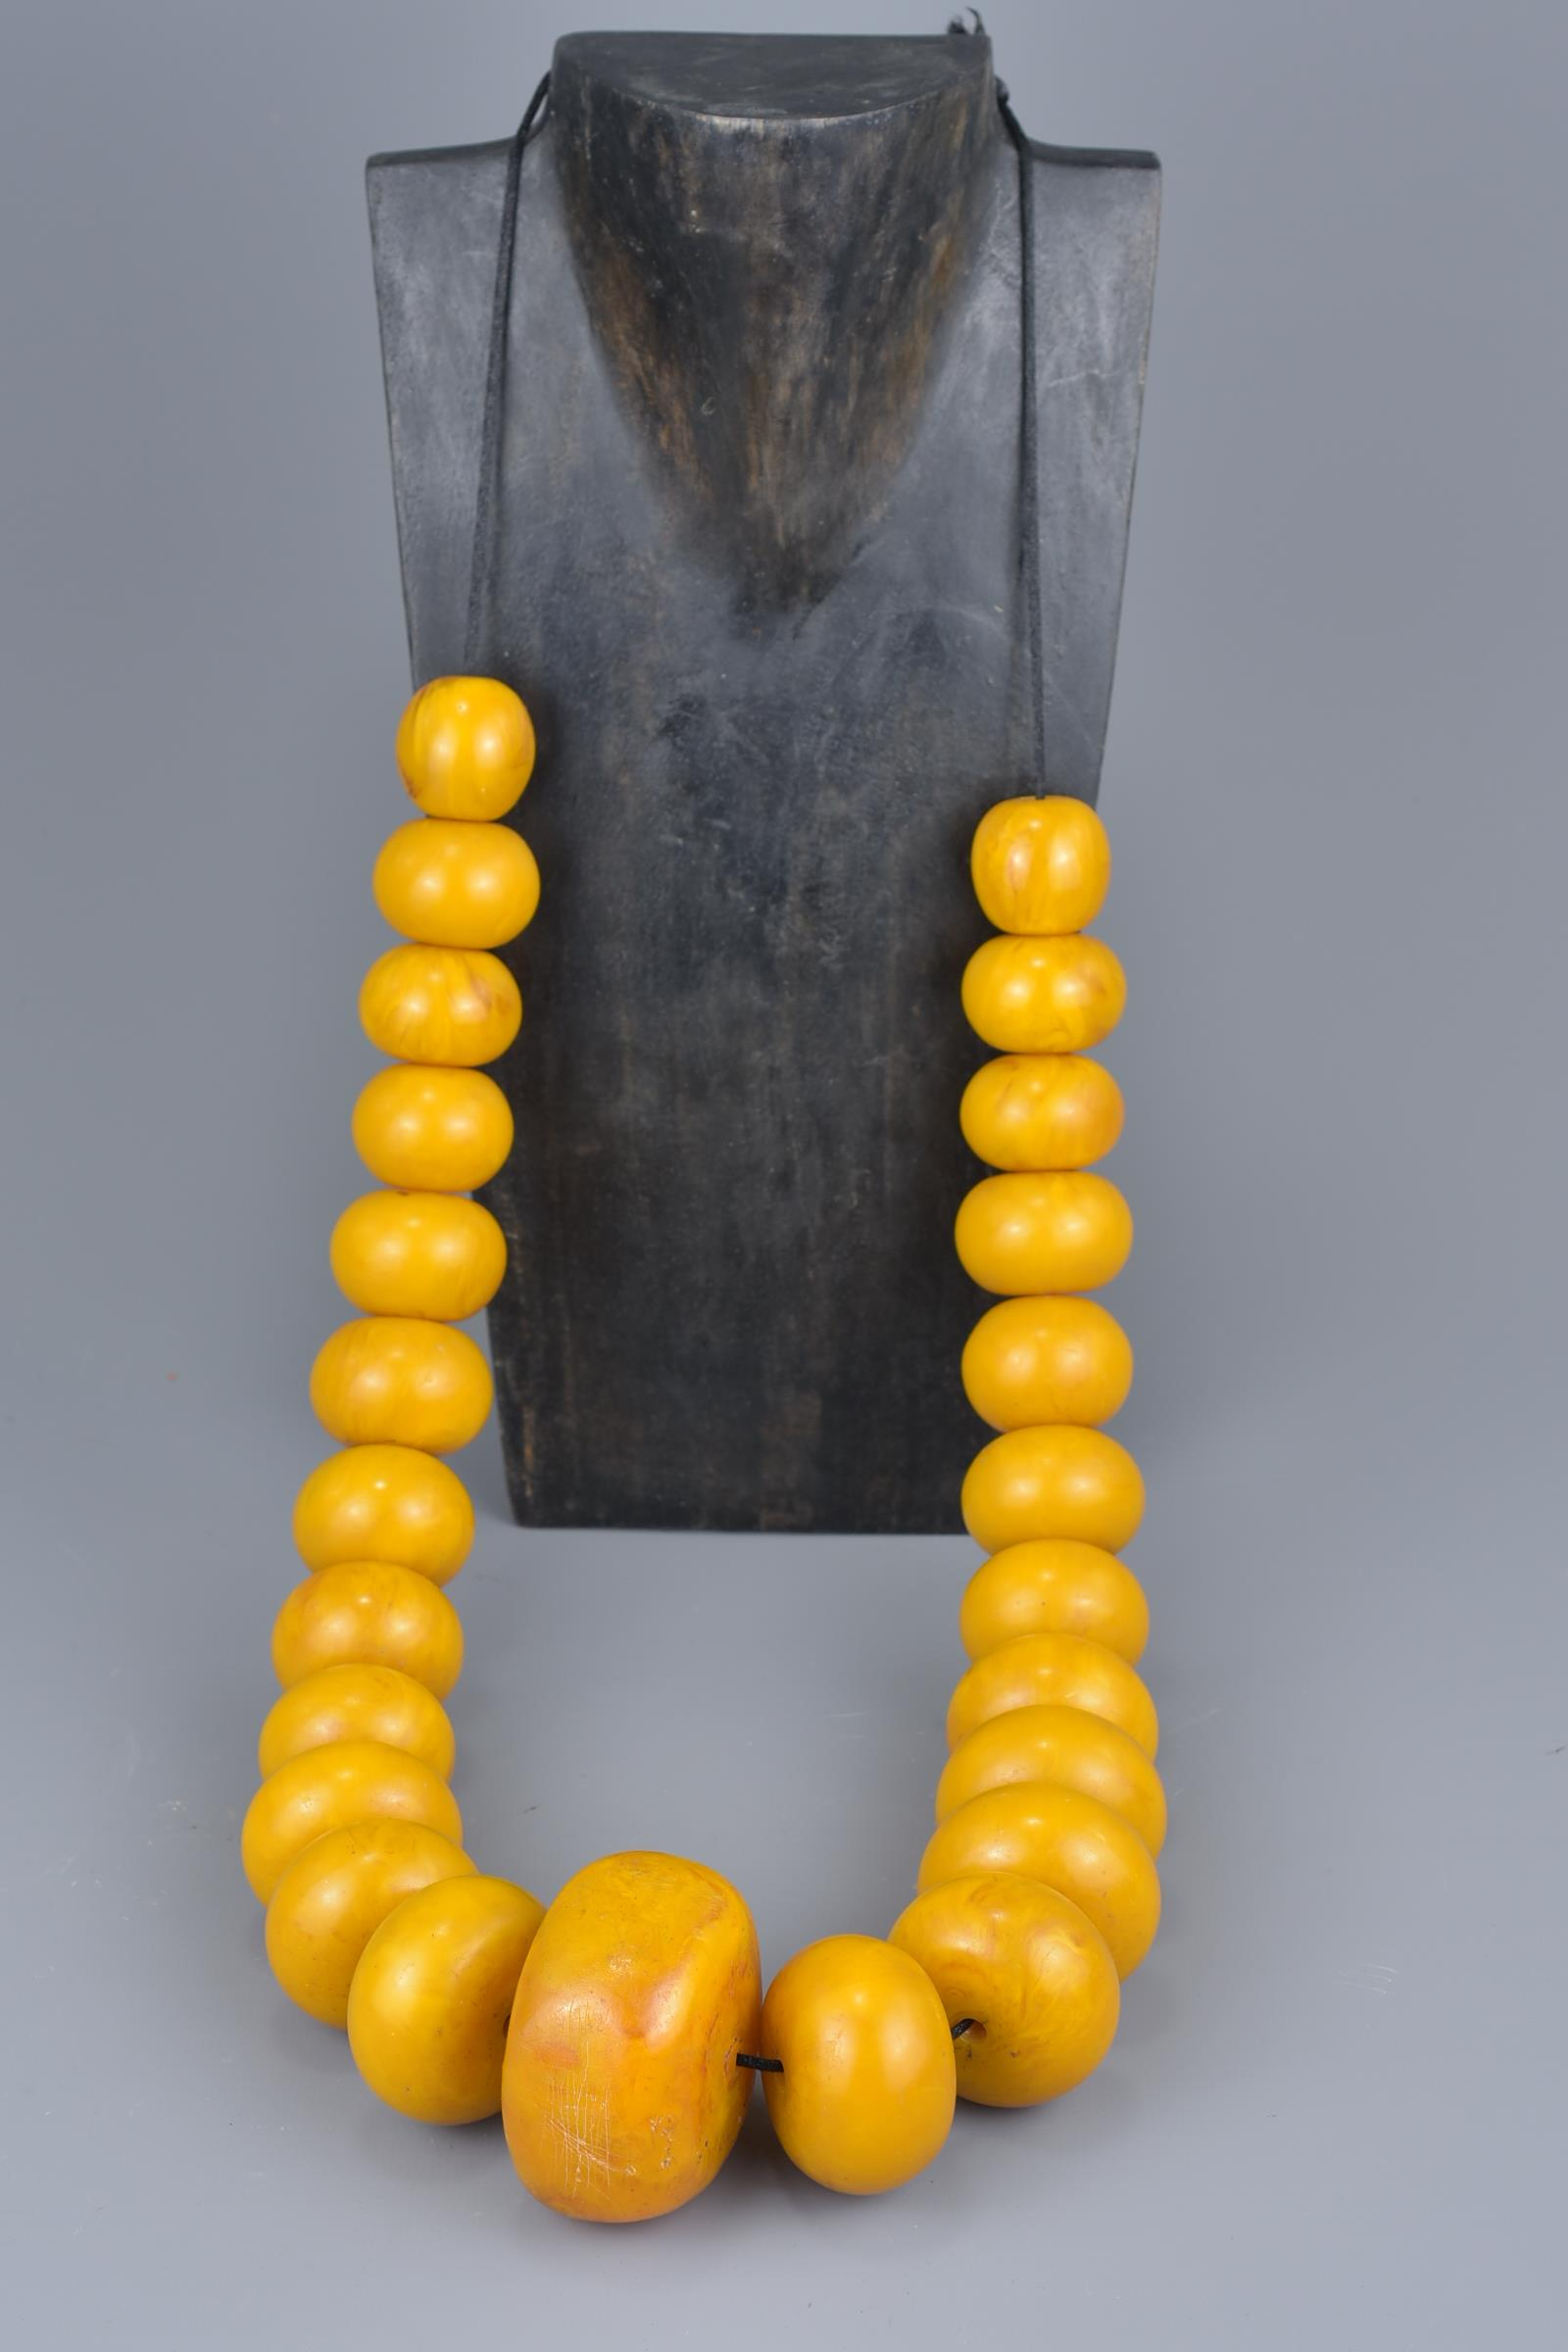 Lot 31 - A large Moroccan amber resin bead necklace on string.